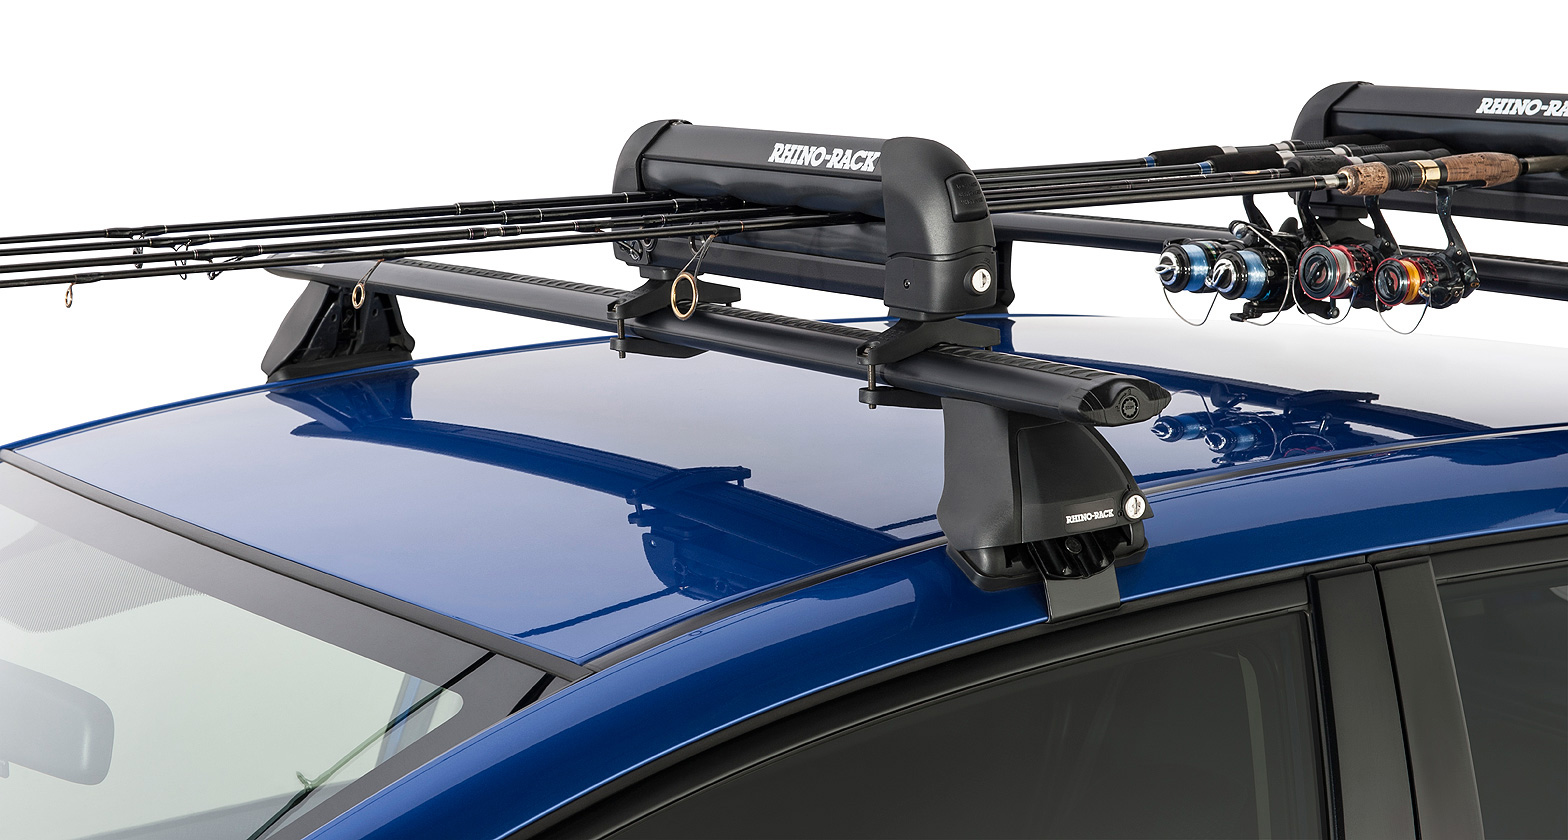 573 Ski And Snowboard Carrier 3 Skis Or 2 Snowboards